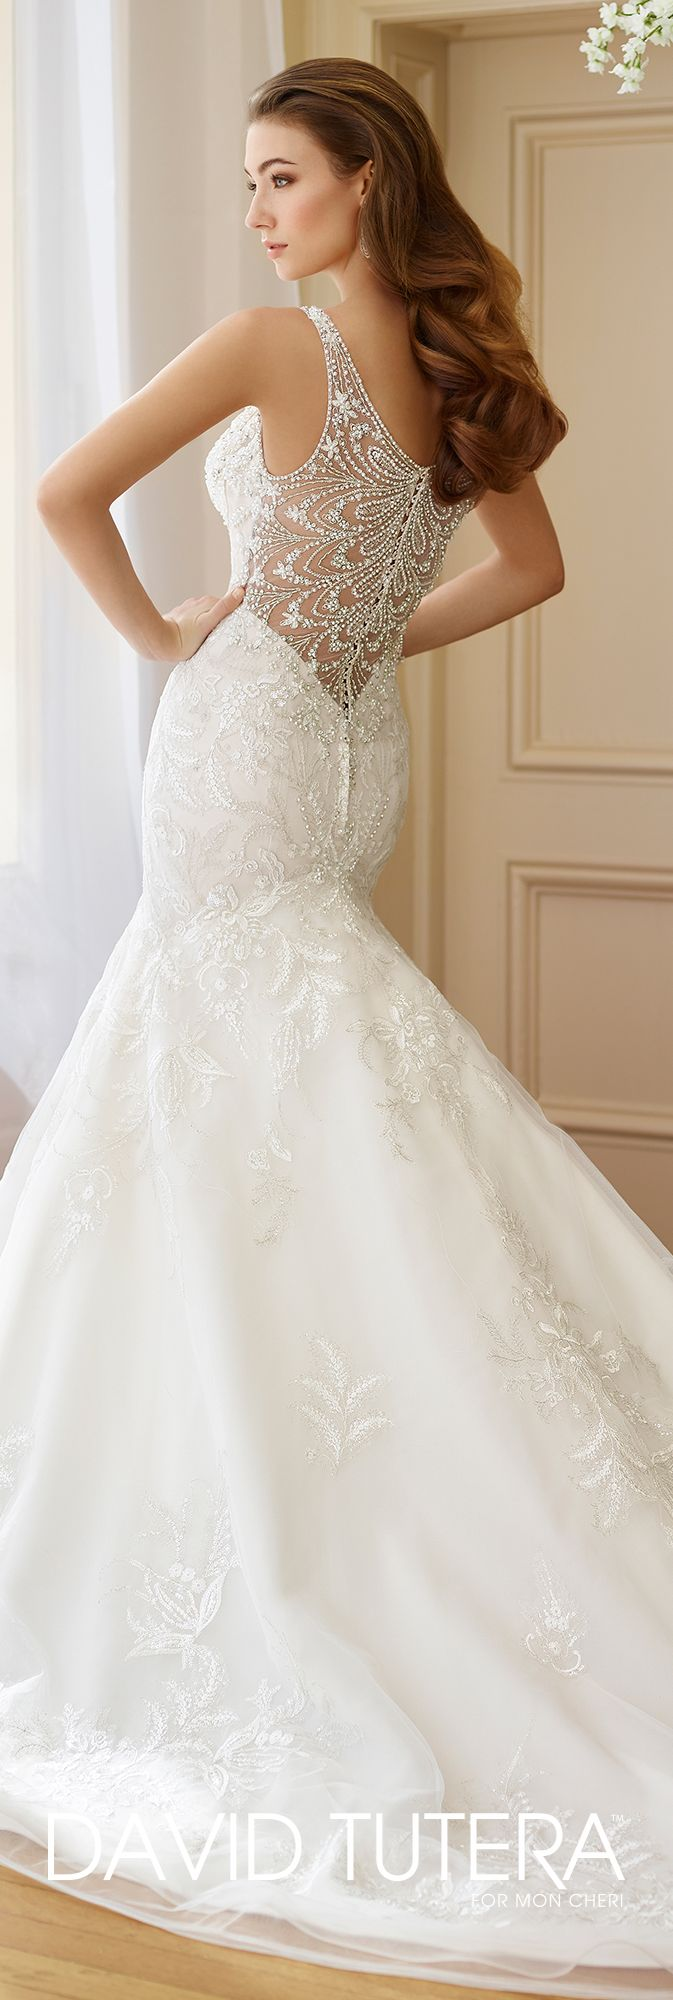 Trumpet Style Wedding Dresses Lace : Lace trumpet gown bess wedding dresses gowns